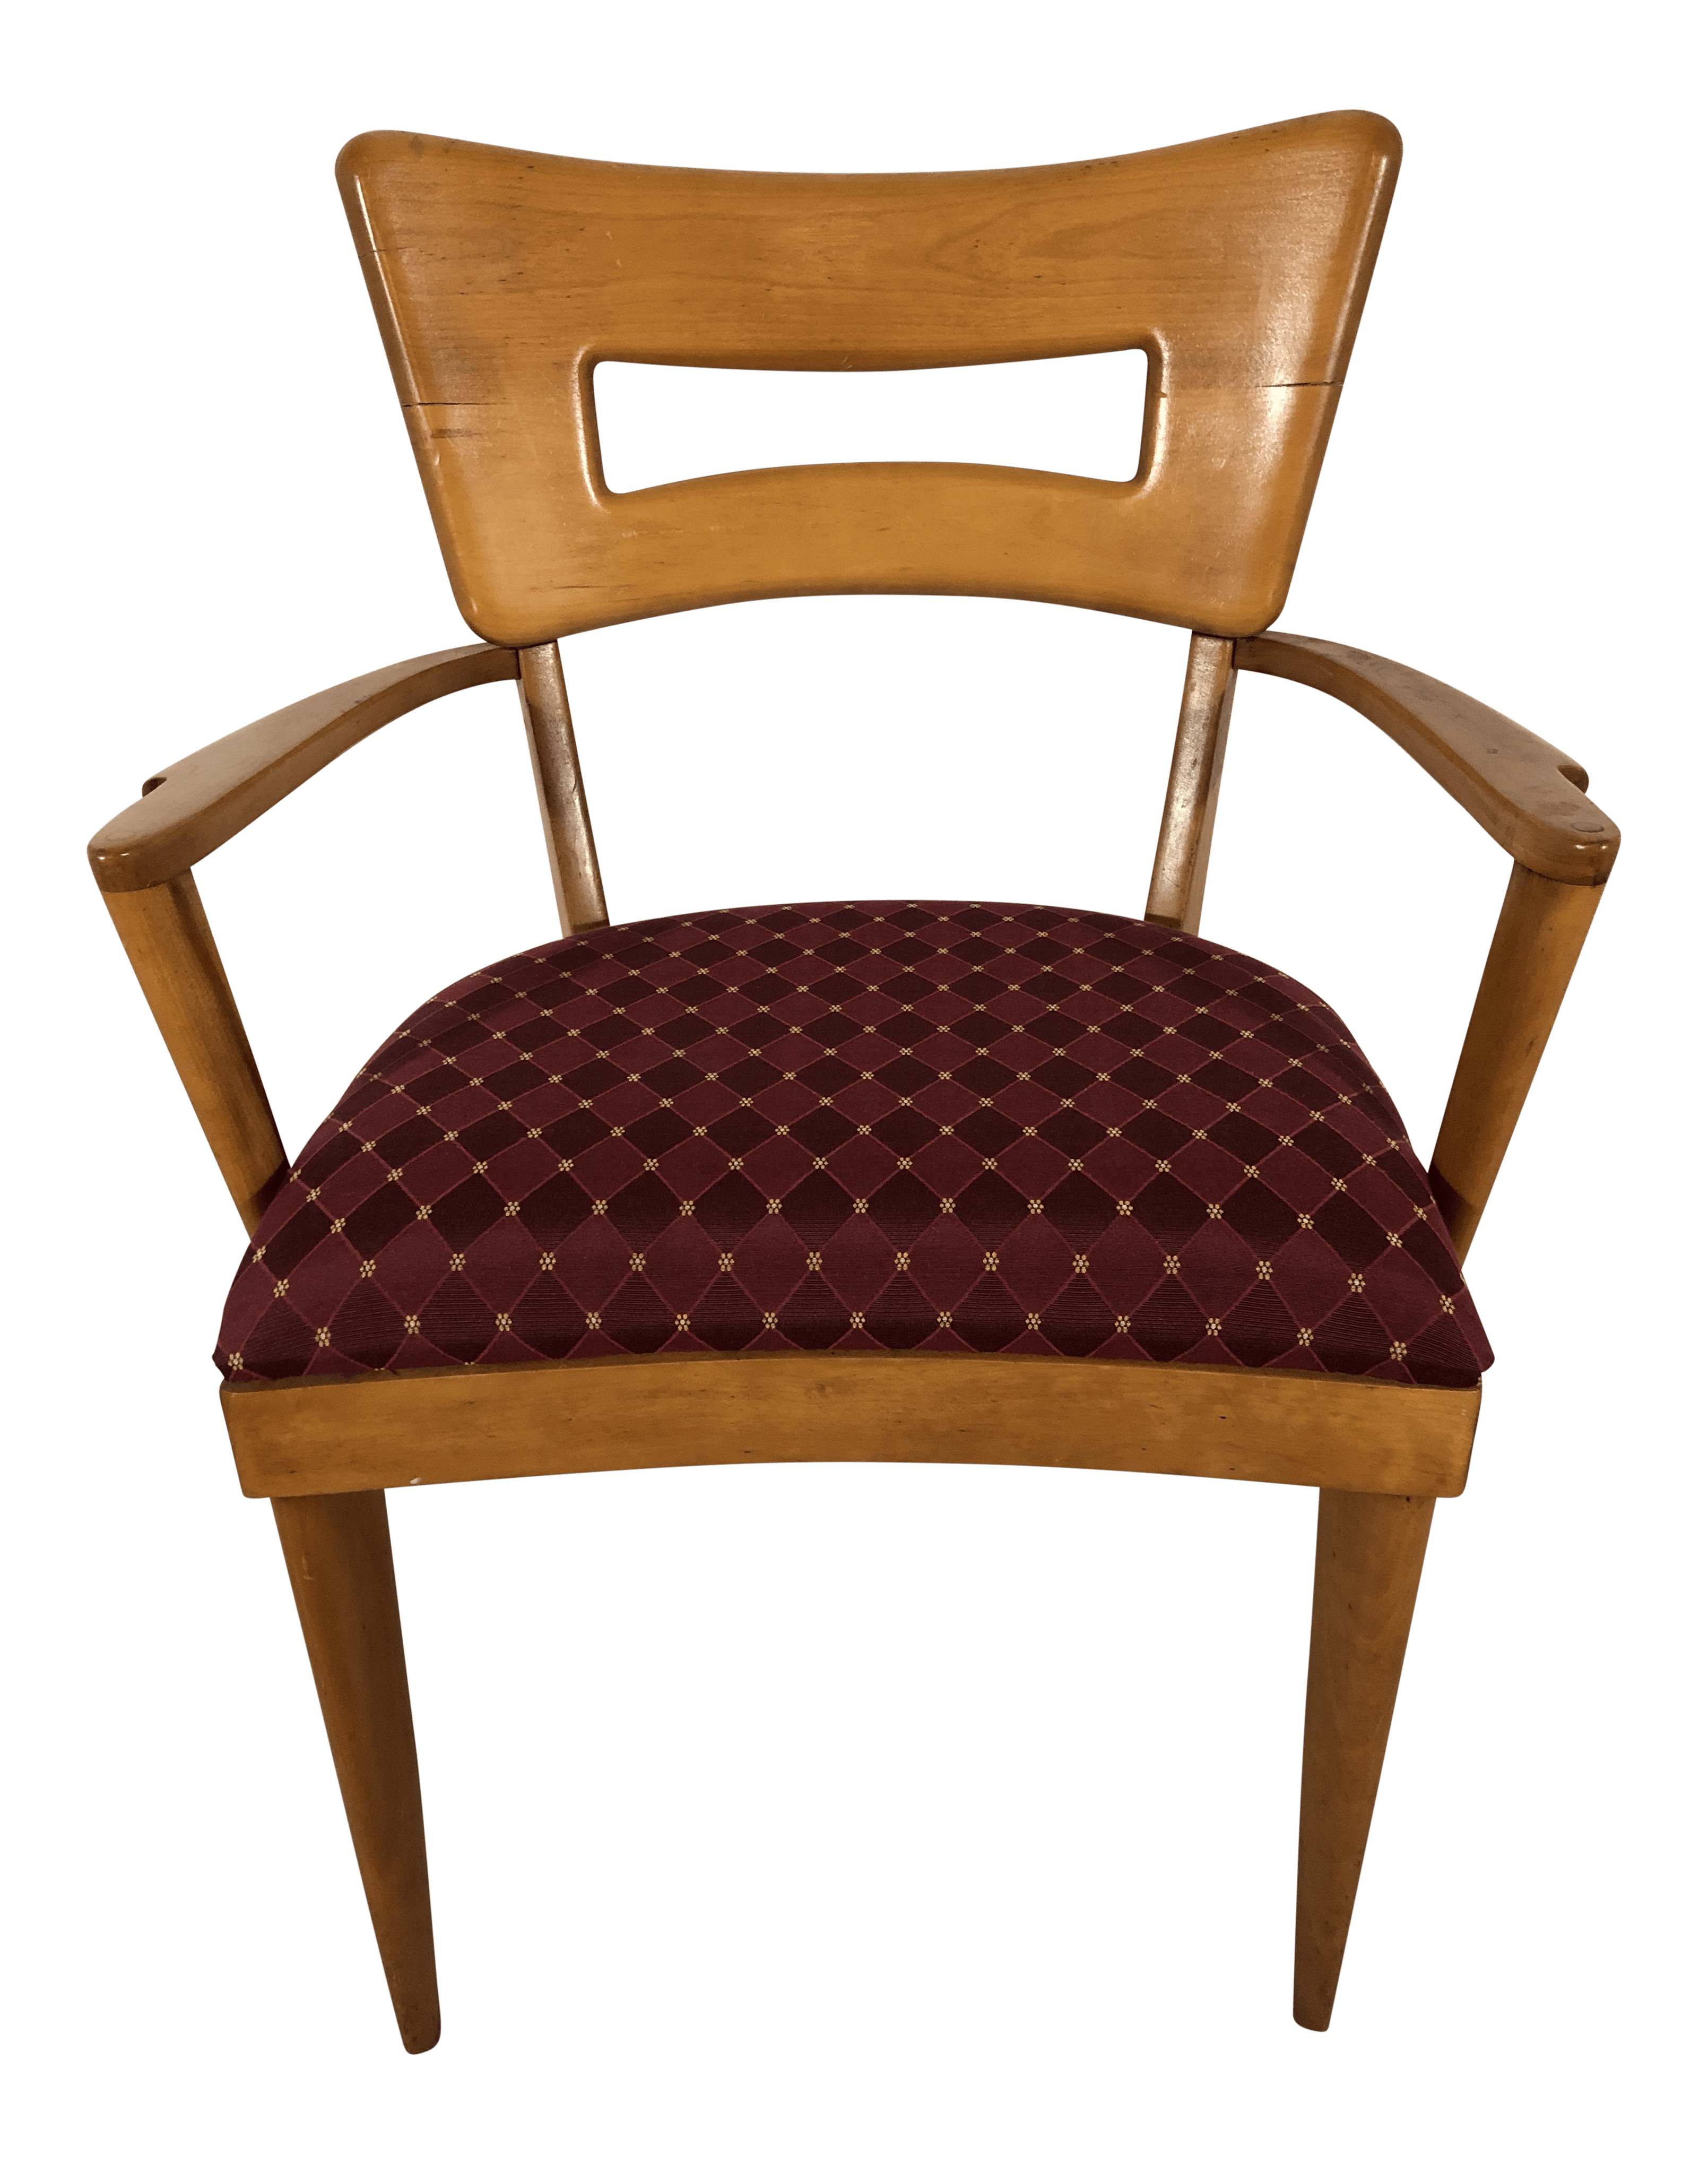 heywood wakefield dogbone chairs cast iron chair and table set arm vintage 1970s chairish